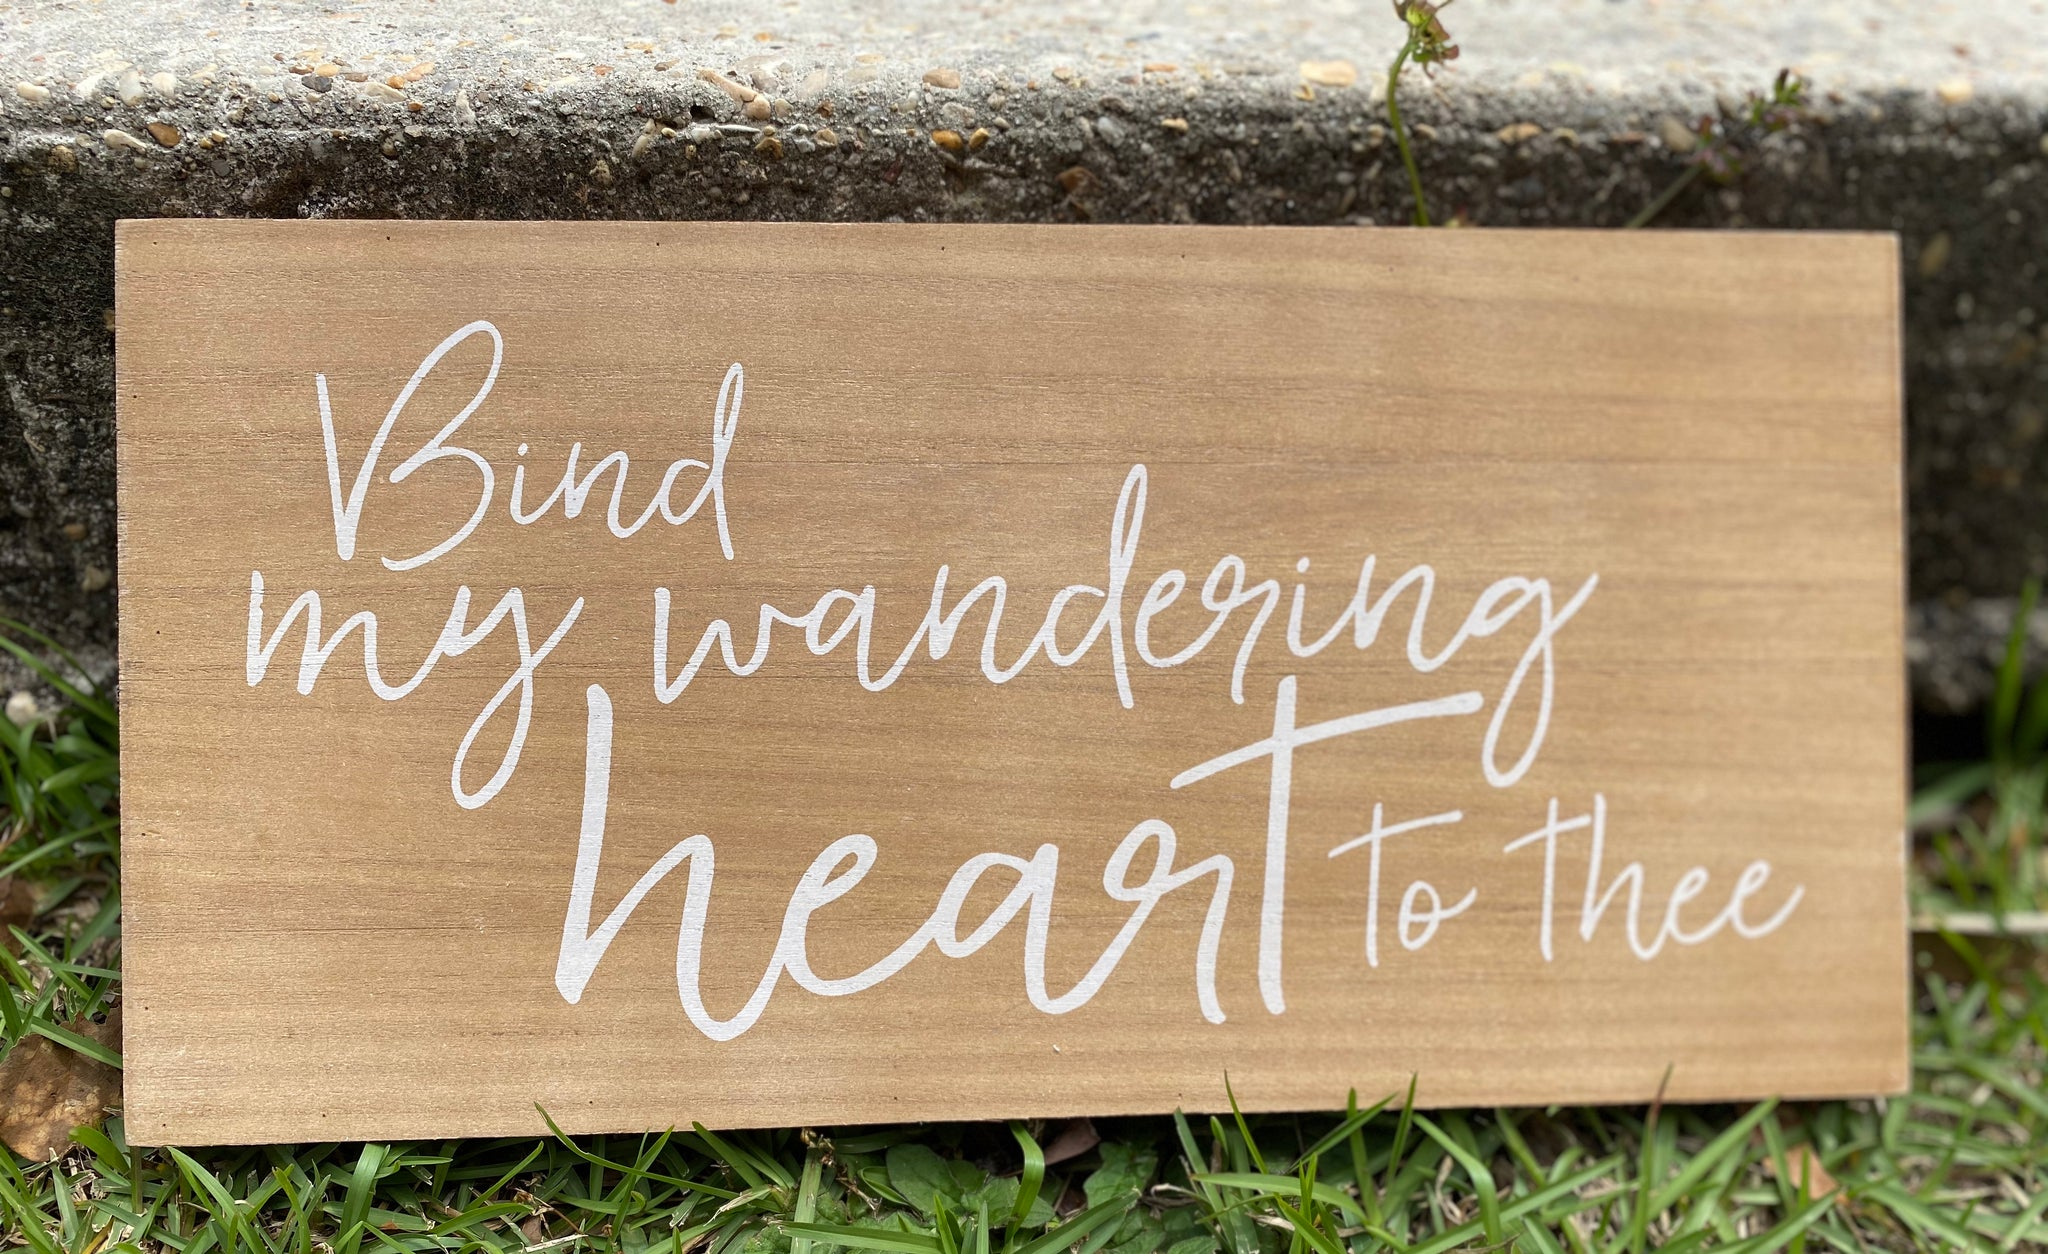 Bind My Wandering Heart To Thee Wooden Wall Plaque - Jessi Jayne Boutique